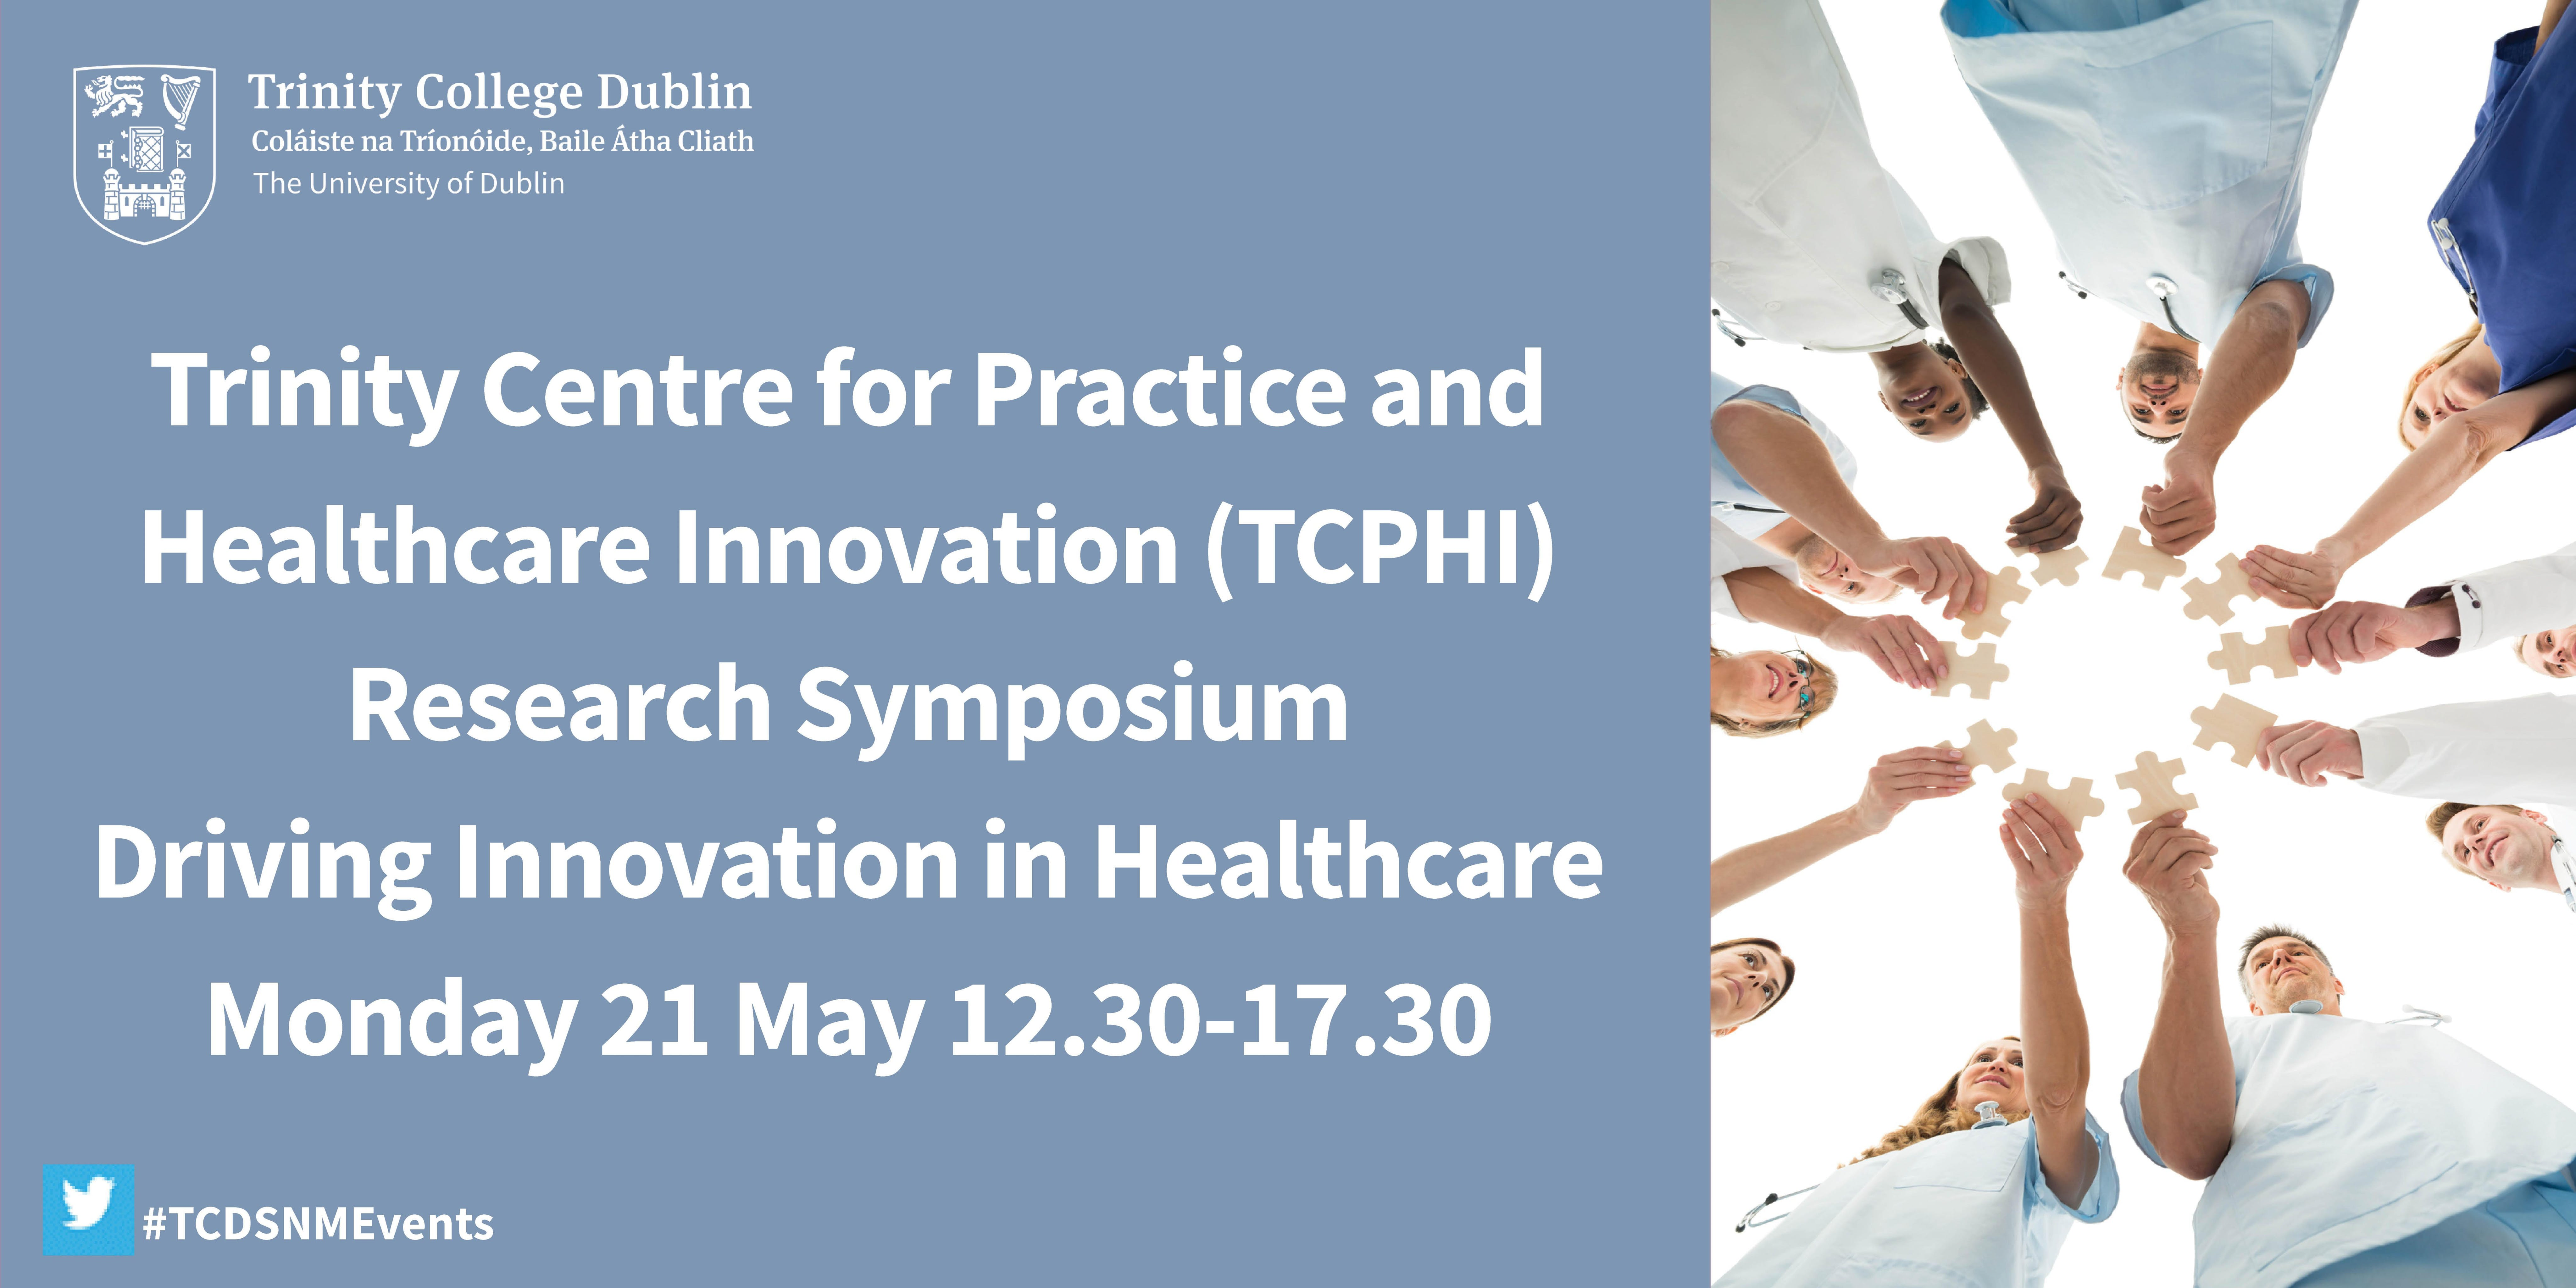 Driving Innovation in Healthcare TCPHI Research Symposium